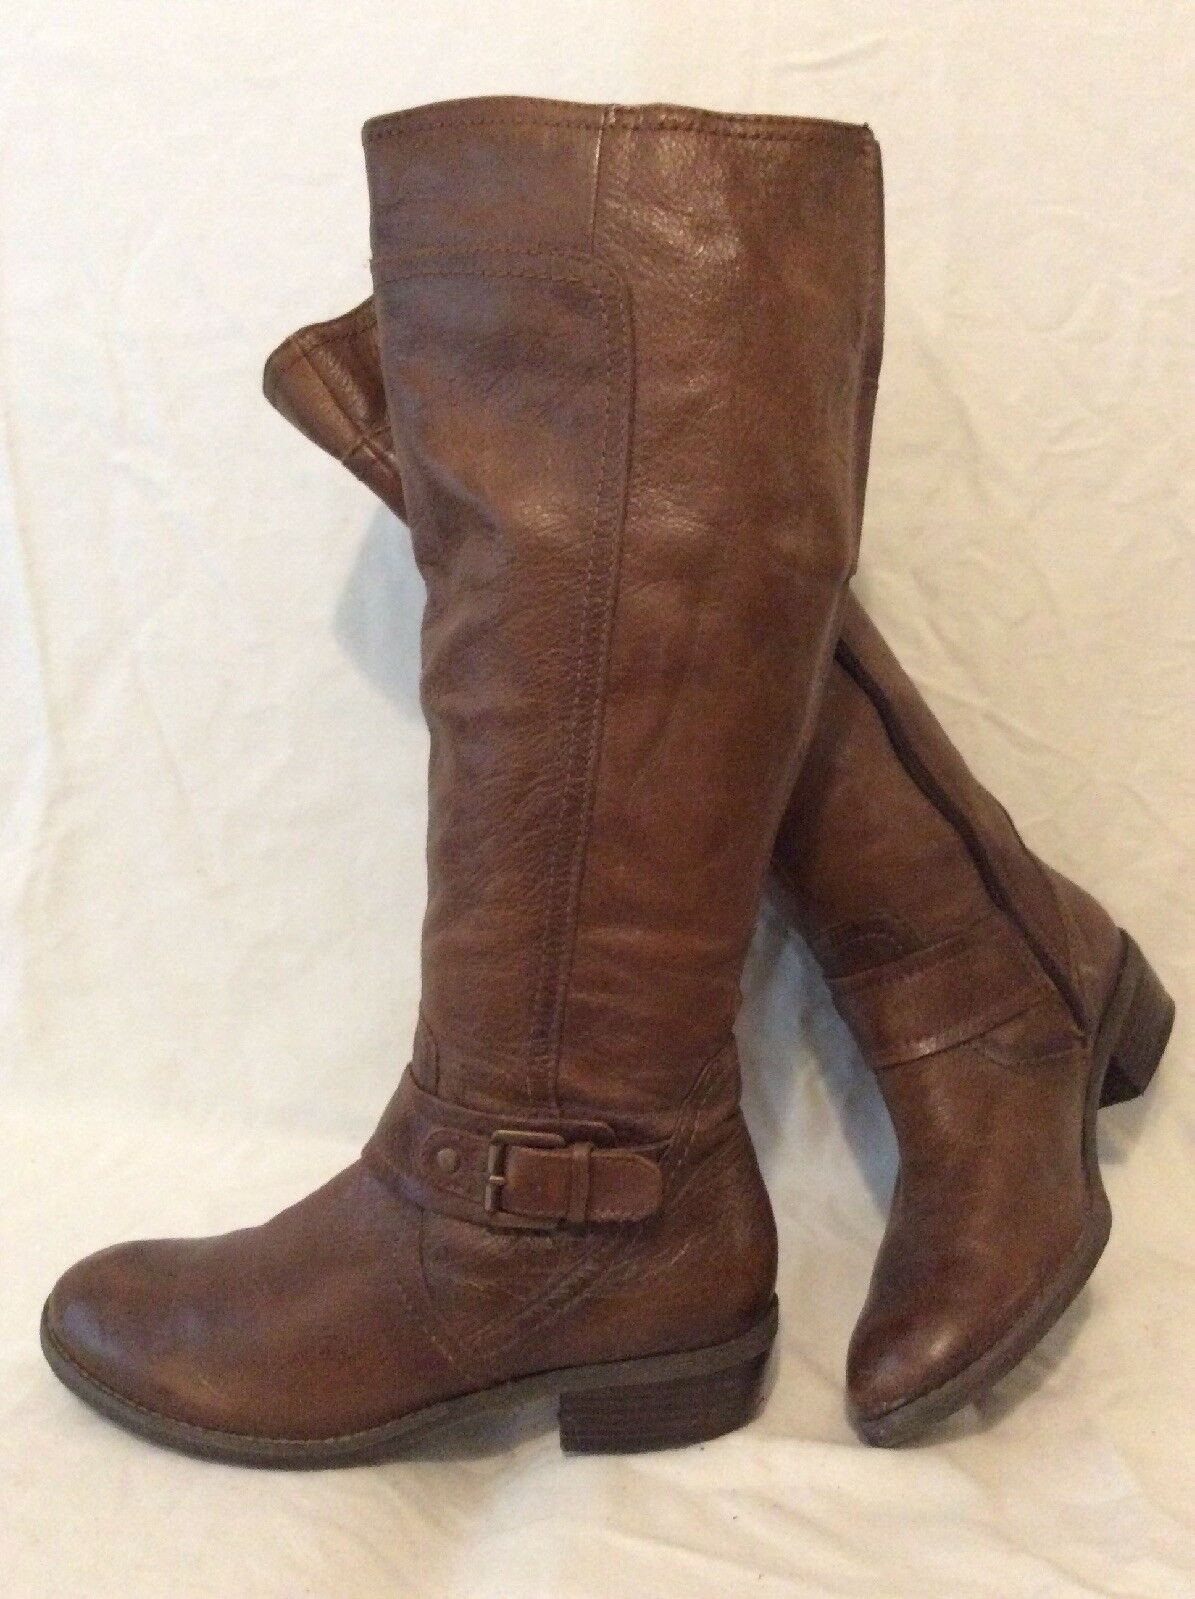 Tu Brown Knee High Leather Boots Size 3